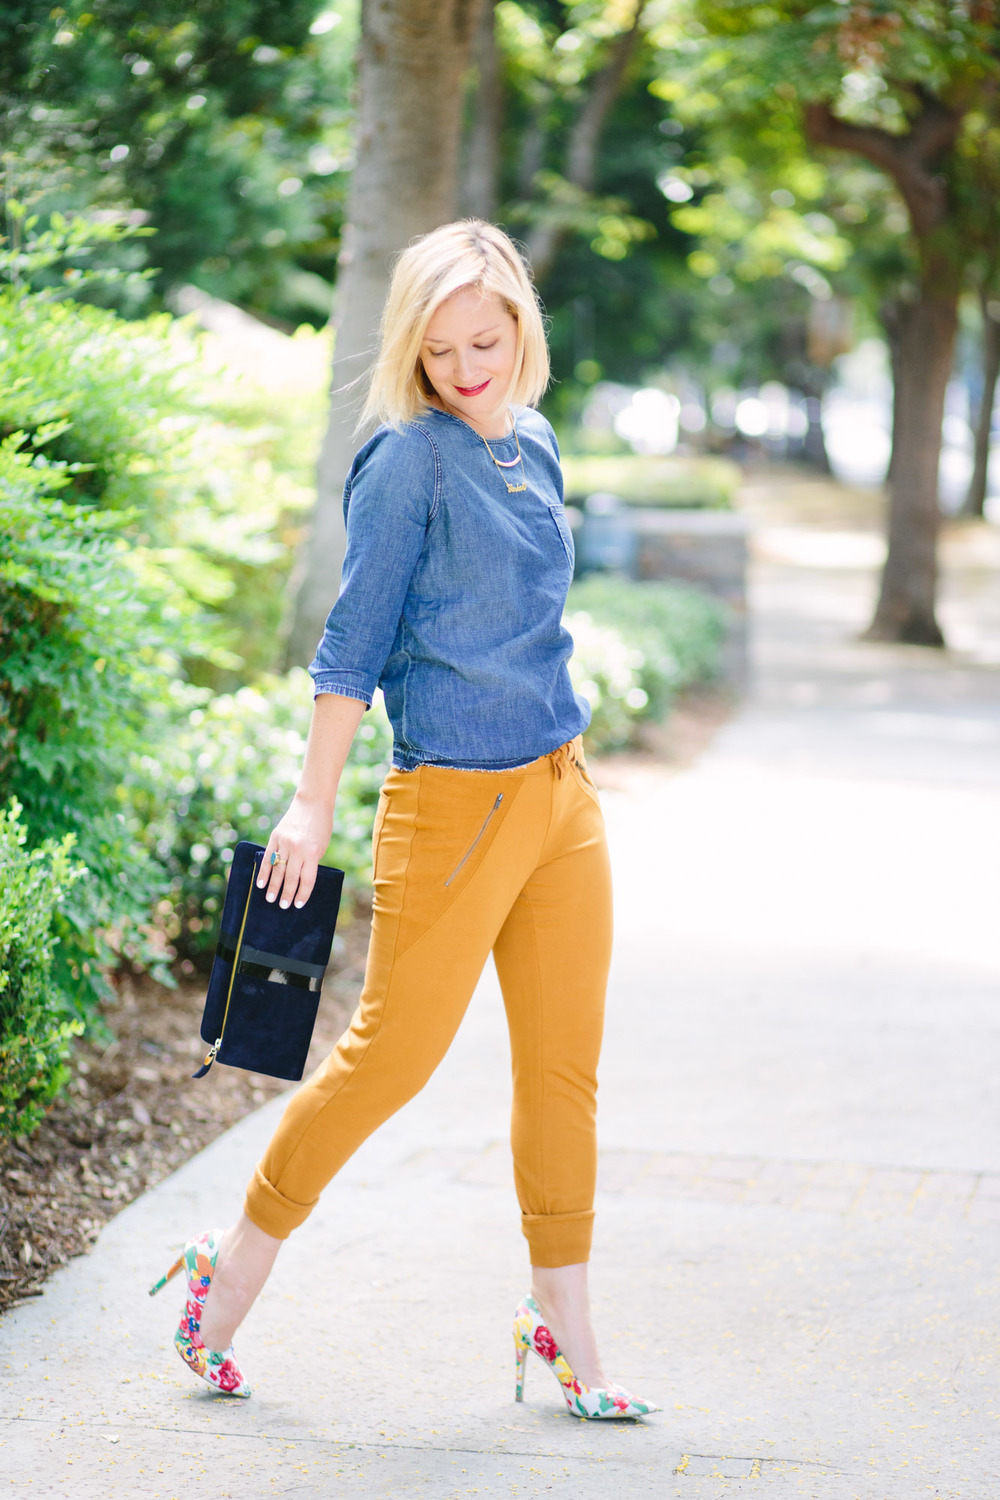 Jen Pinkston - The Effortless Chic